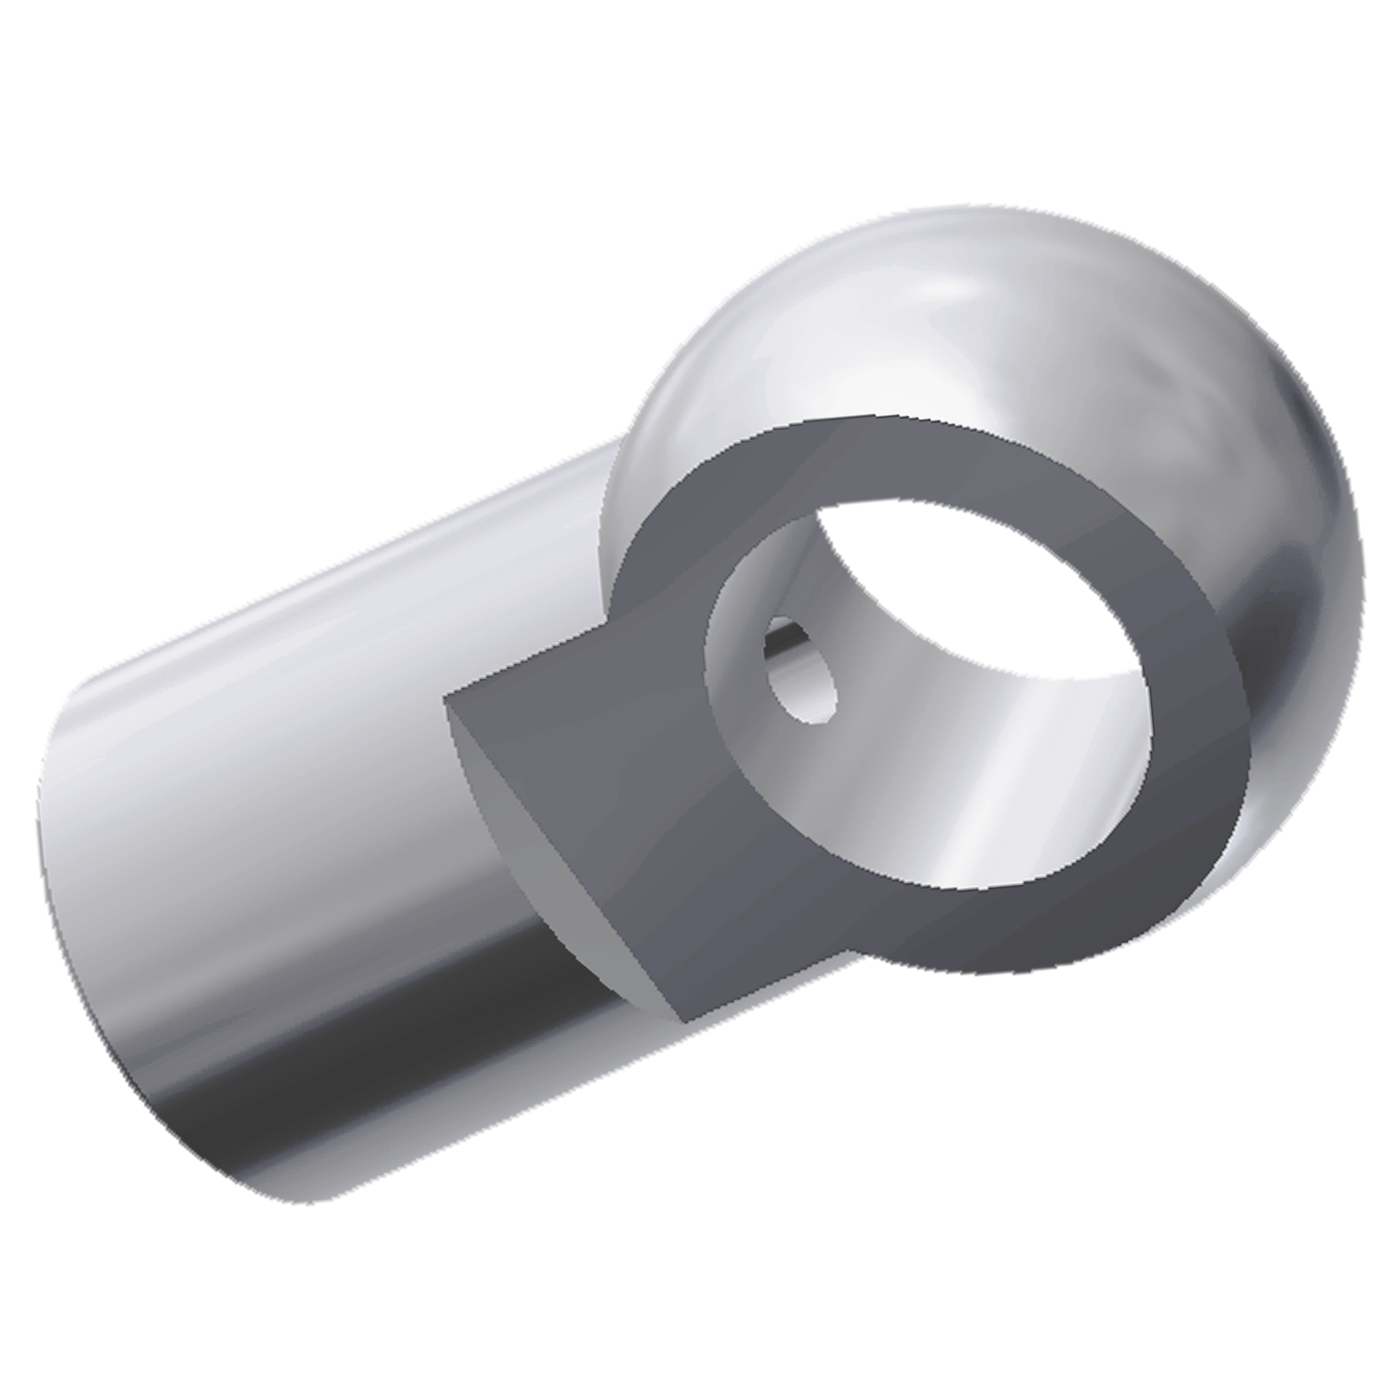 We are specialists in the manufacture of knuckle eyes and produce customer-specific special knuckle eyes on the basis of customer drawings. We will naturally provide you with the support you need to put your ideas into practice.